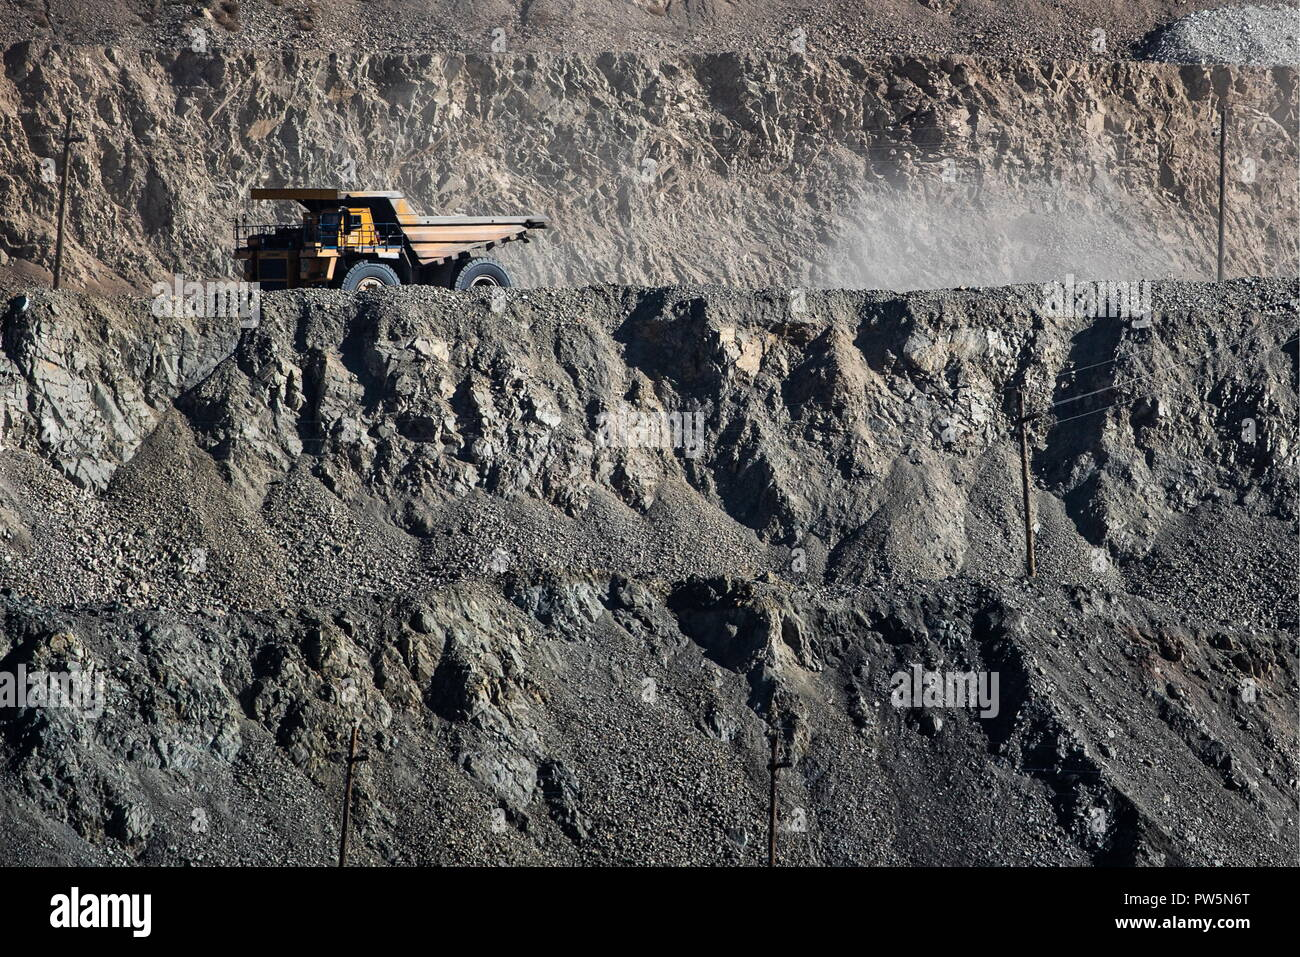 ERDENET, MONGOLIA - OCTOBER 11, 2018: A mining truck in a copper and molybdenum mine on the Erdenetiyn-ovoo deposit, operated by Erdenet Mining Corporation (EMC), a major manufacturer of copper concentrate and molybdenum concentrate. Sergei Bobylev/TASS - Stock Image